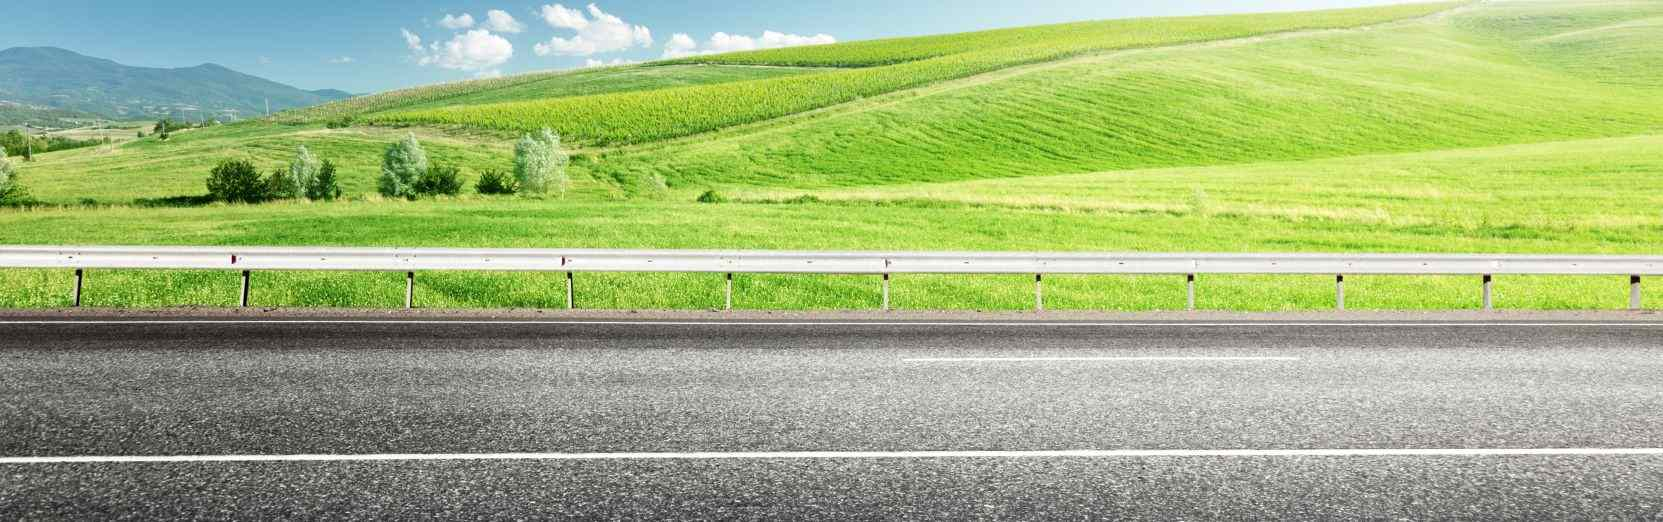 9 sitzer mieten sunny cars autovermietung. Black Bedroom Furniture Sets. Home Design Ideas